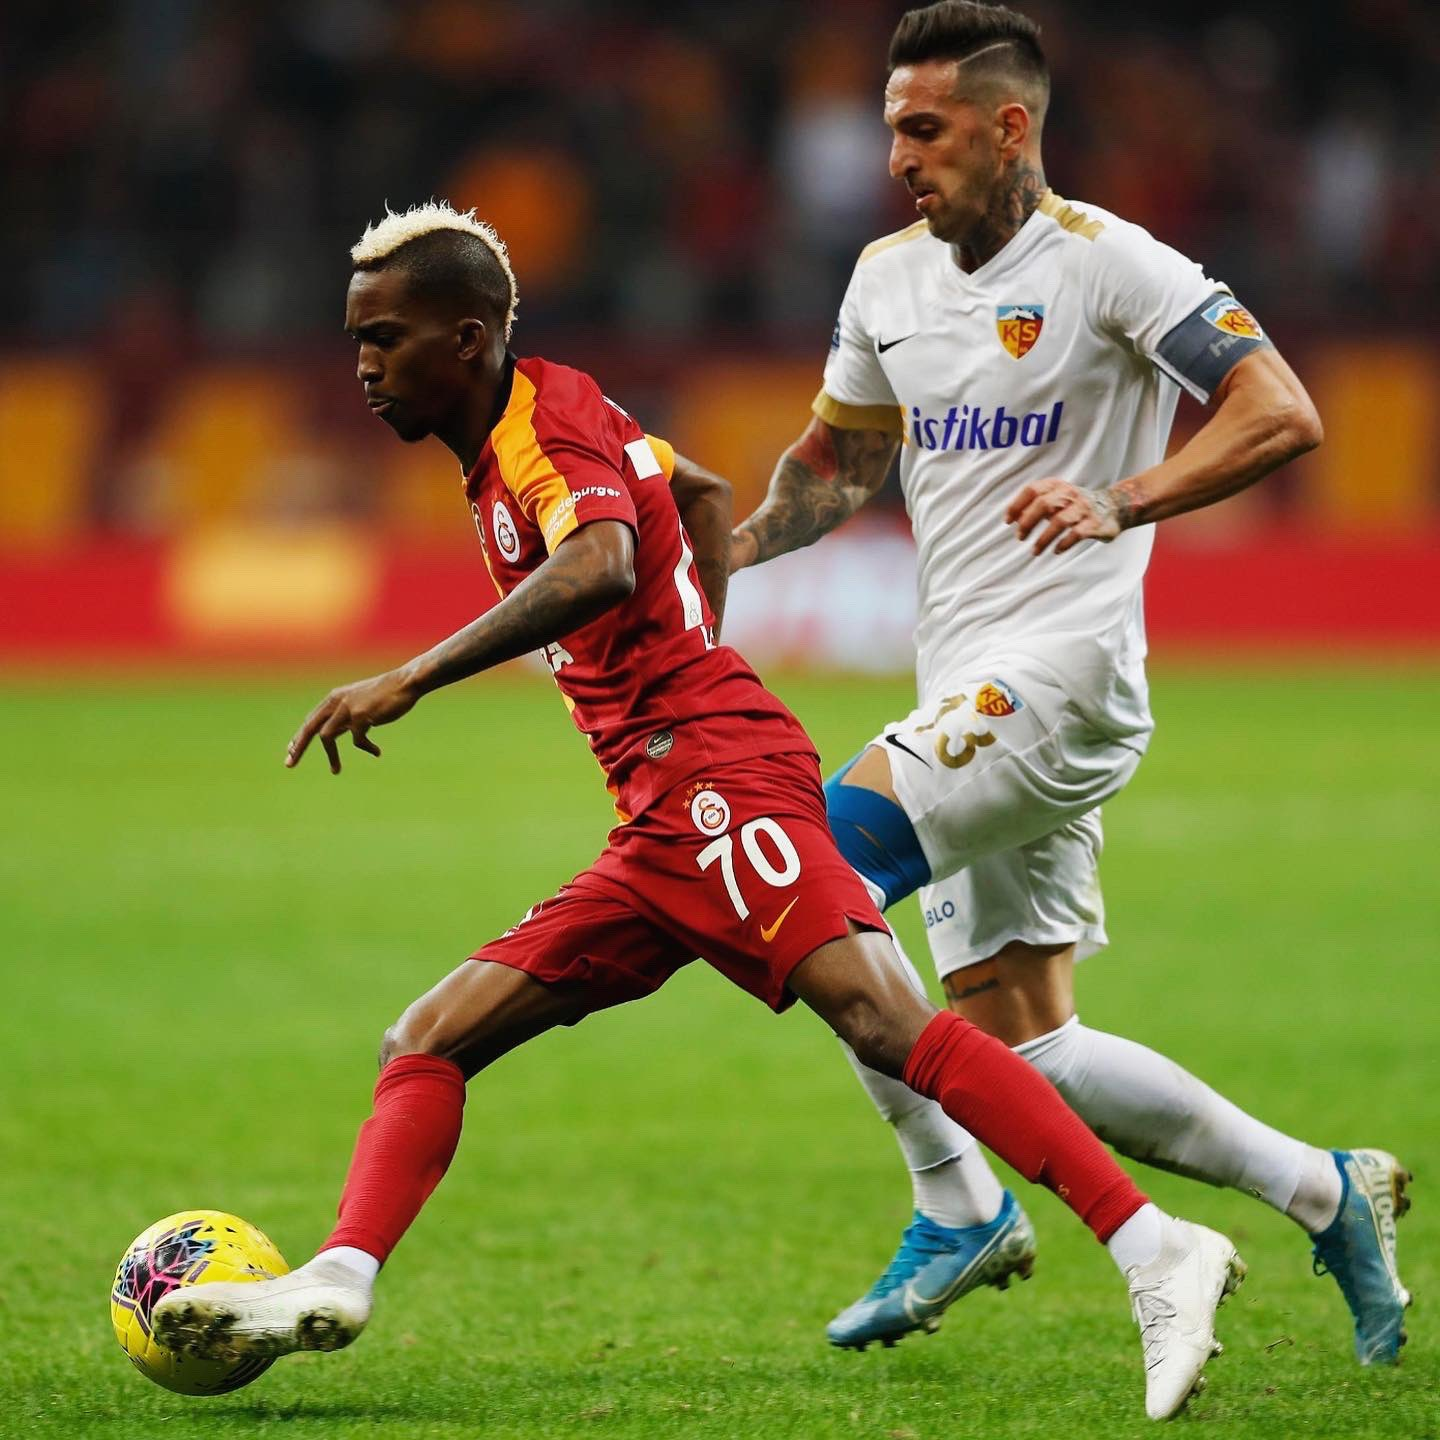 Onyekuru Delighted With Assist In Galatasaray's Debut